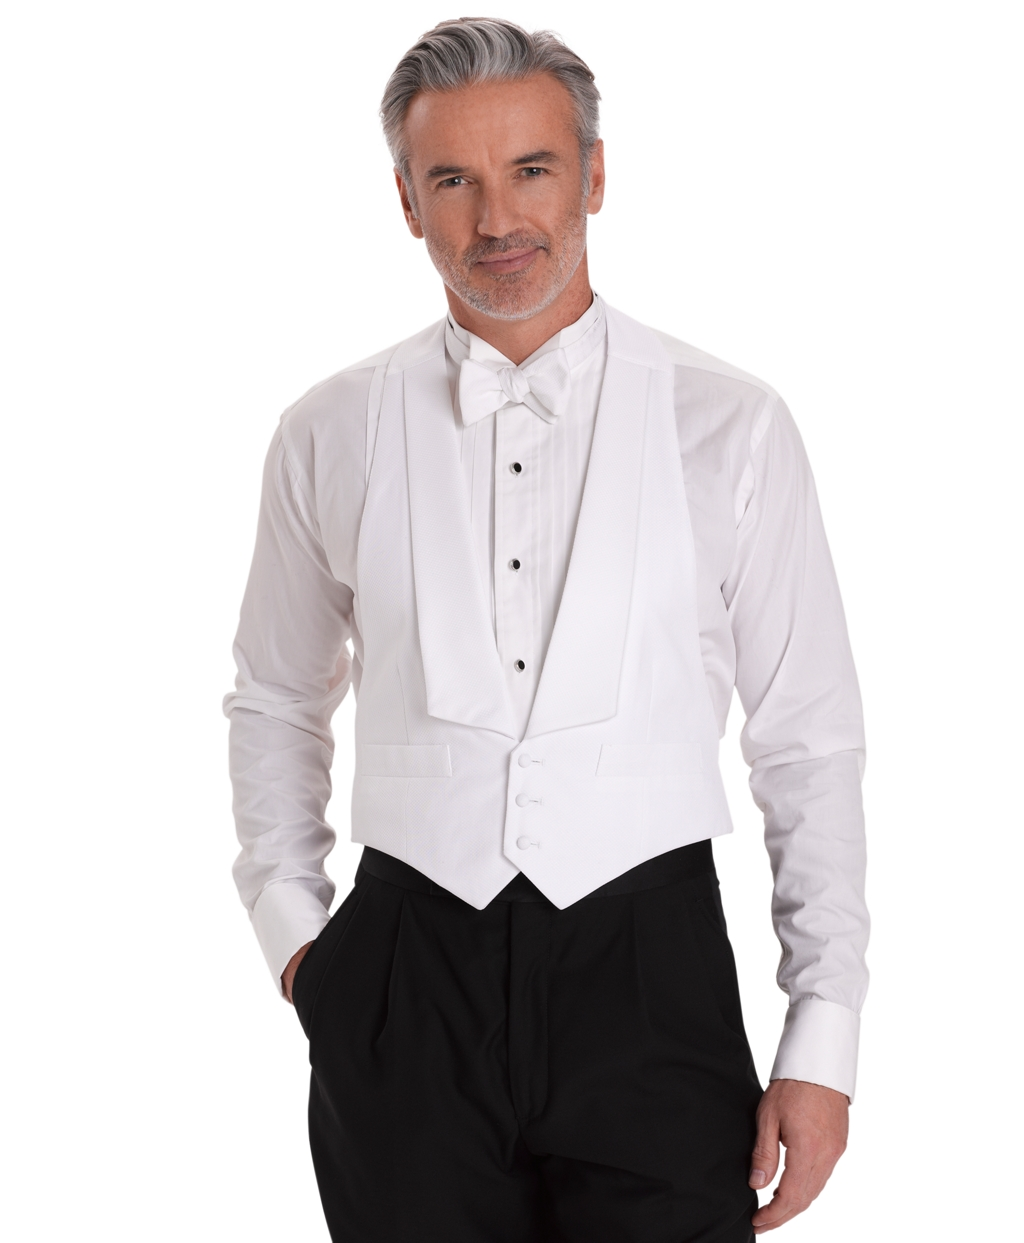 1920s Fashion for Men Brooks Brothers Mens White Cotton Pique Tuxedo Vest $225.00 AT vintagedancer.com